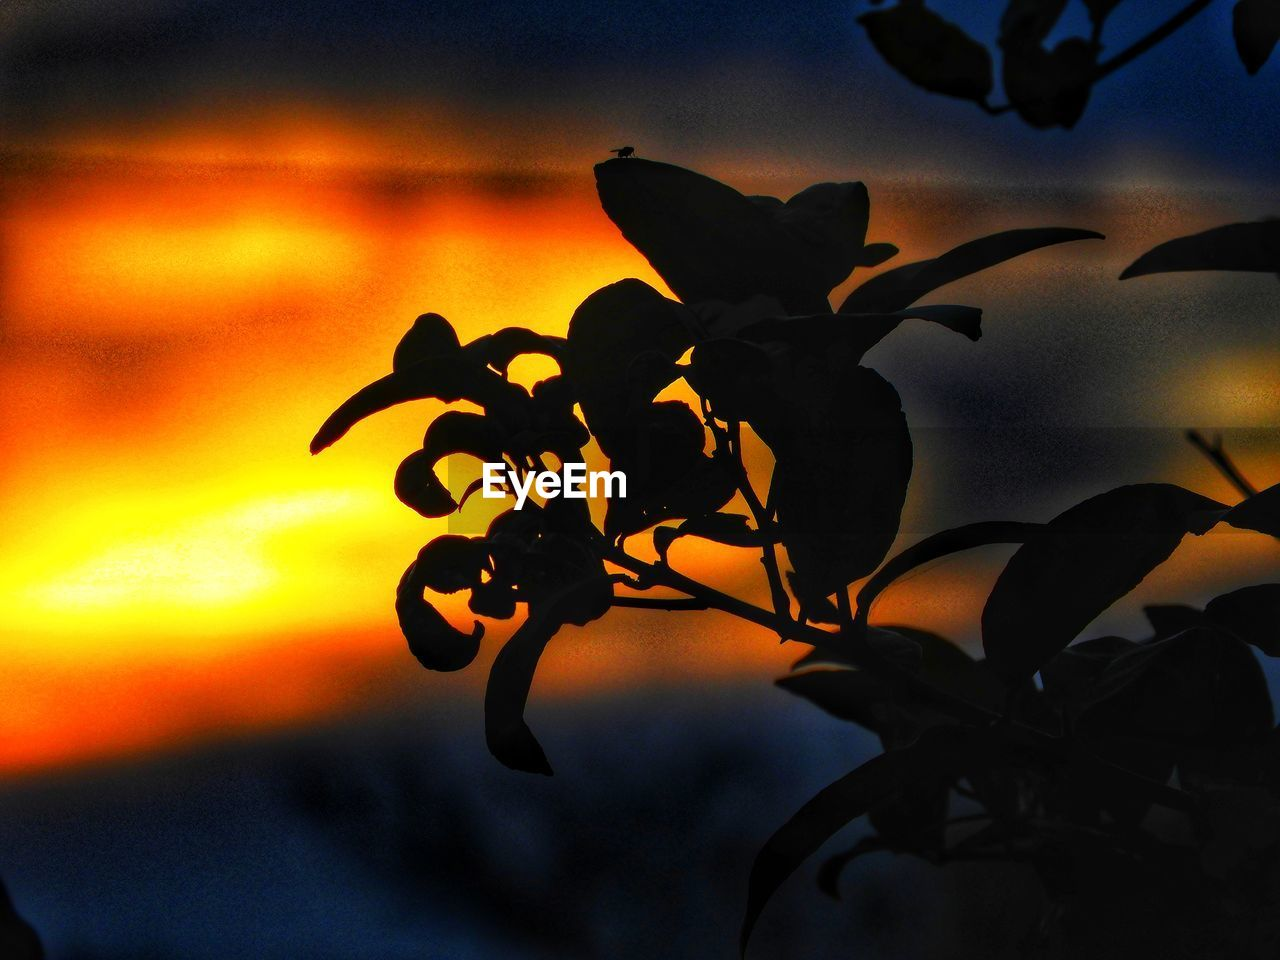 sunset, nature, silhouette, flower, beauty in nature, orange color, sky, close-up, outdoors, leaf, no people, cloud - sky, growth, tree, plant, yellow, scenics, branch, night, flower head, fragility, freshness